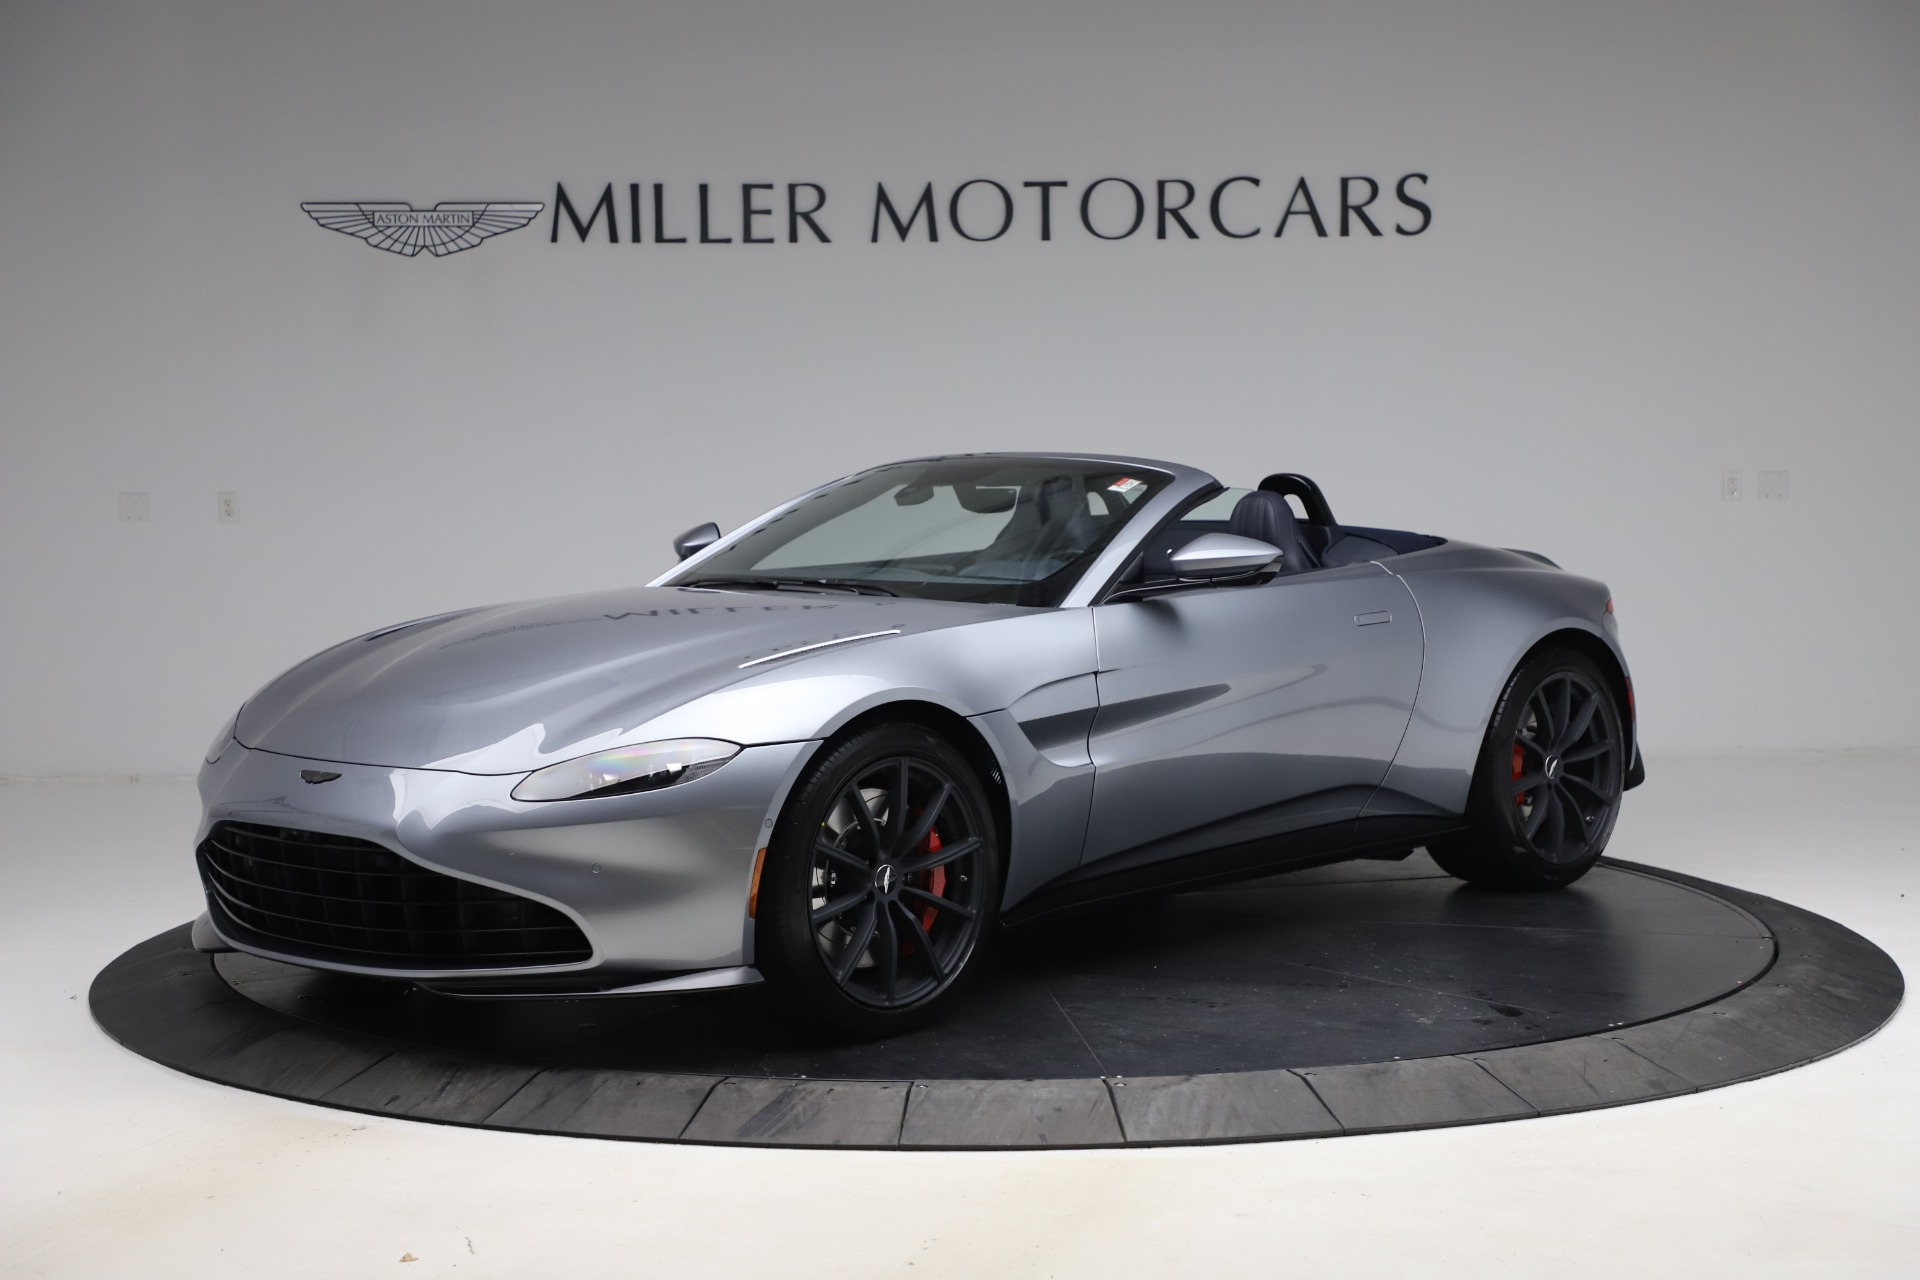 New 2021 Aston Martin Vantage Roadster Convertible for sale Sold at Aston Martin of Greenwich in Greenwich CT 06830 1